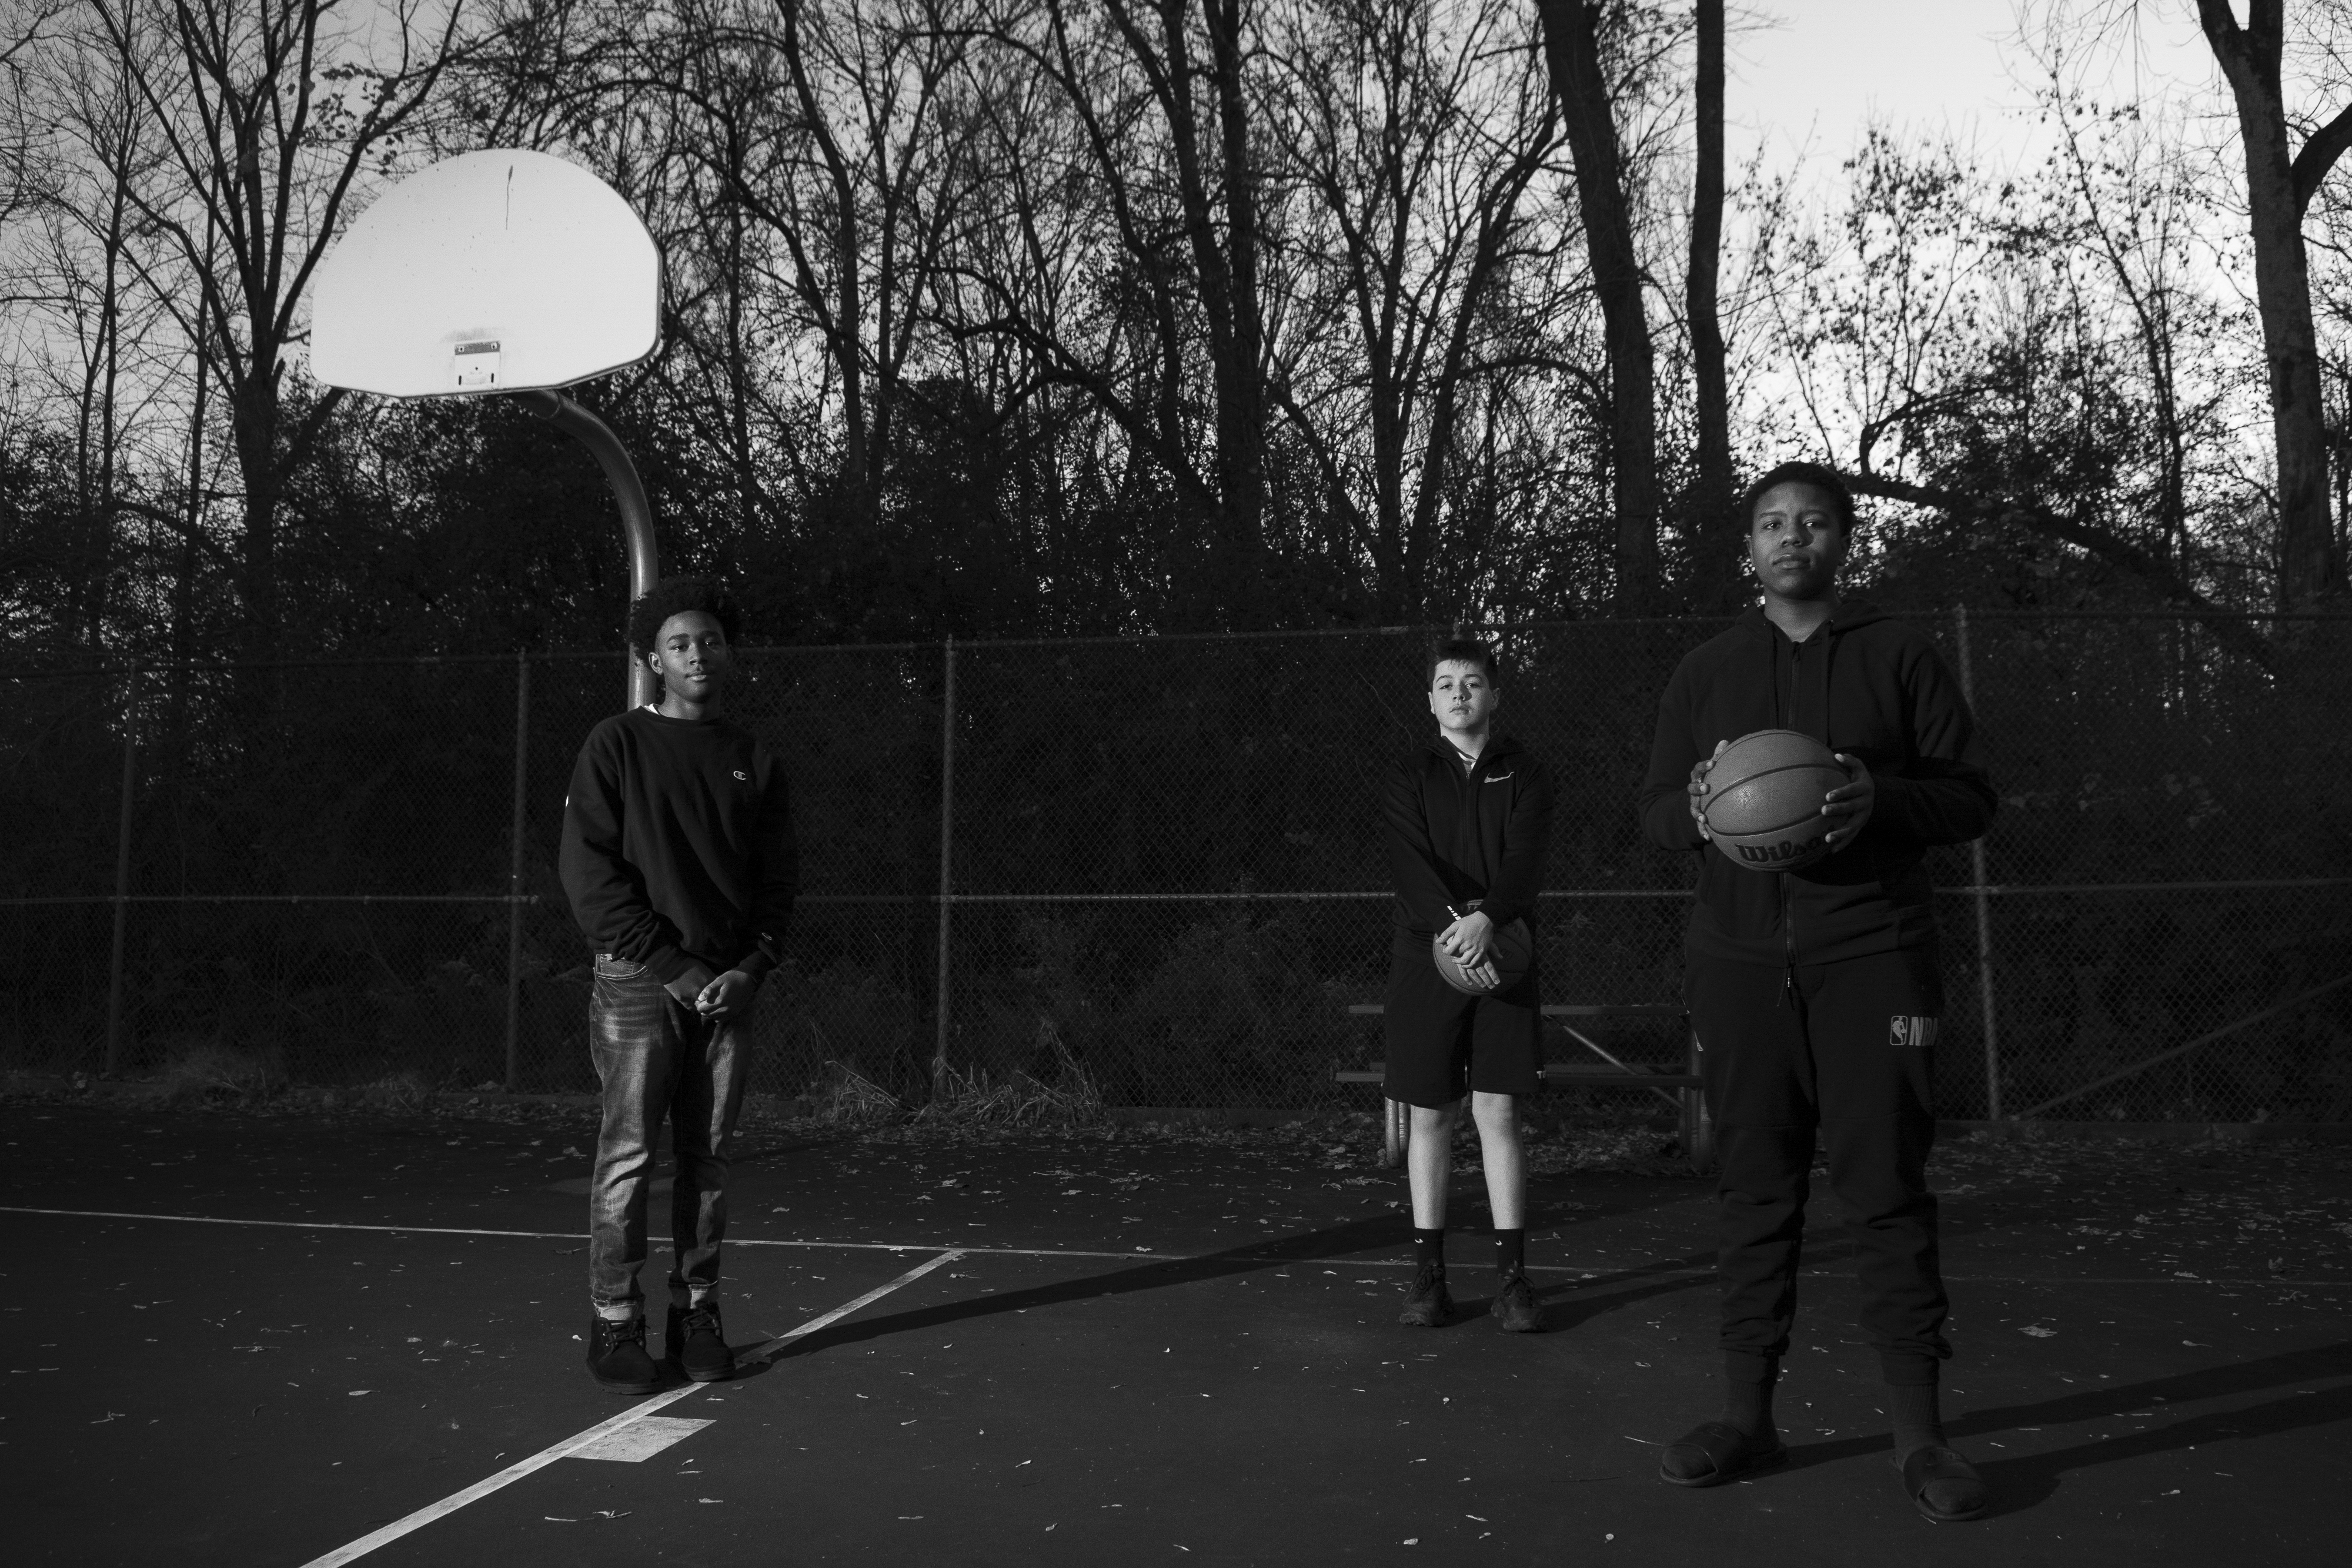 Jamir Ellerby, Jay Peña and Brian Hall stand under the rimless basketball hoops in Syracuse's Kelley Brothers Memorial Park.